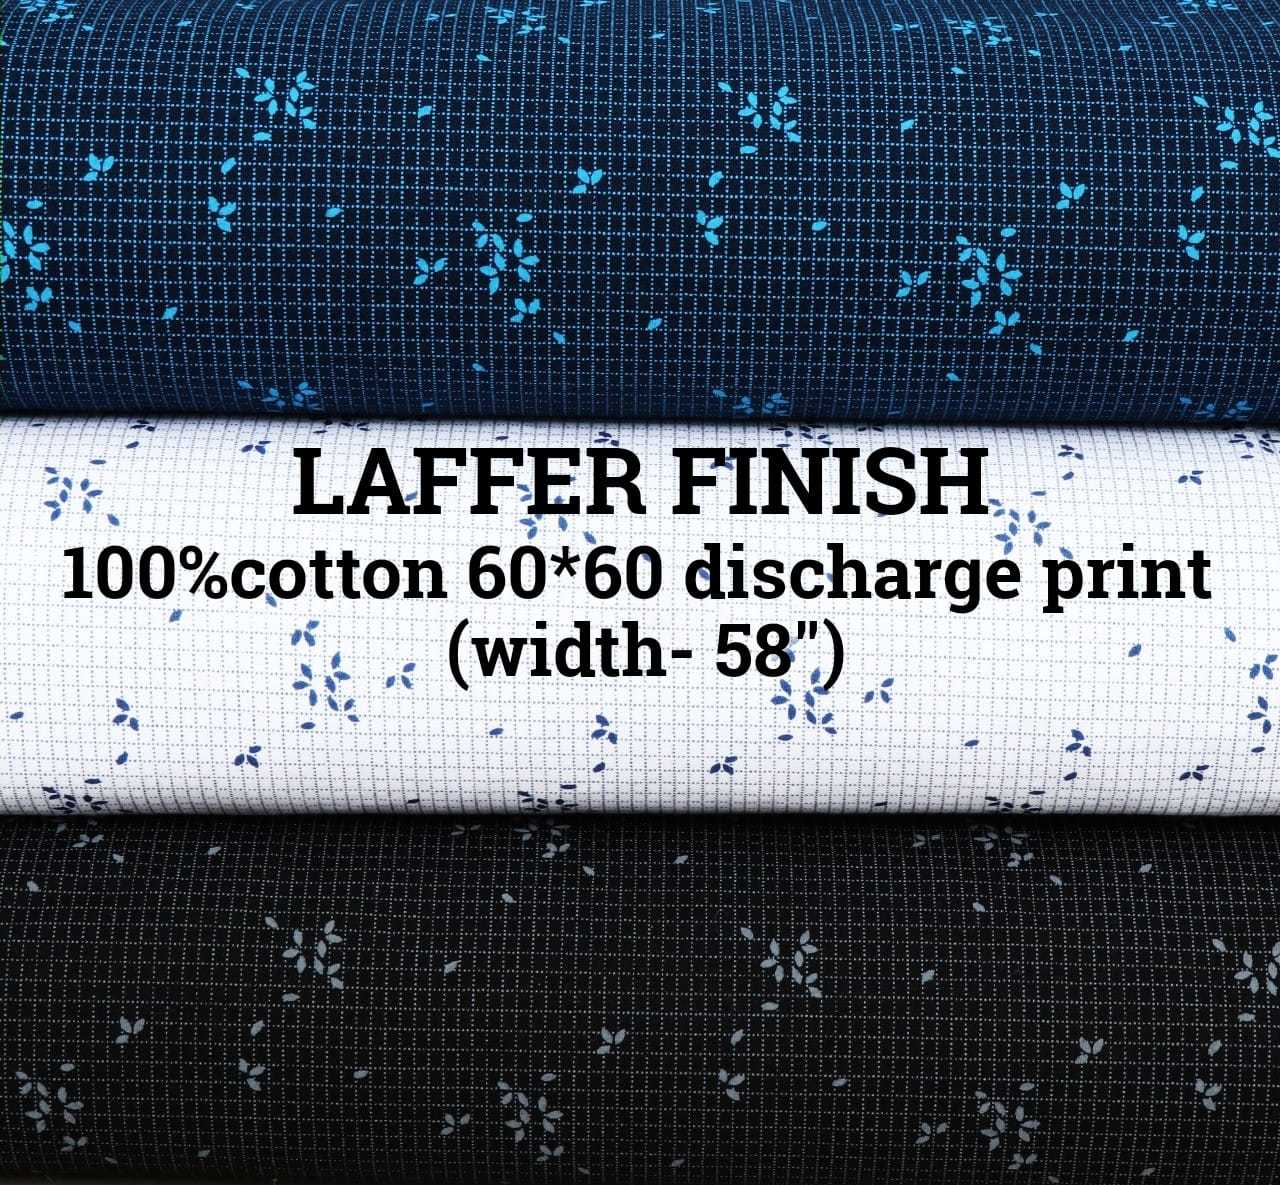 LAFFER FINISH 100% cotton 60*60 discharge print